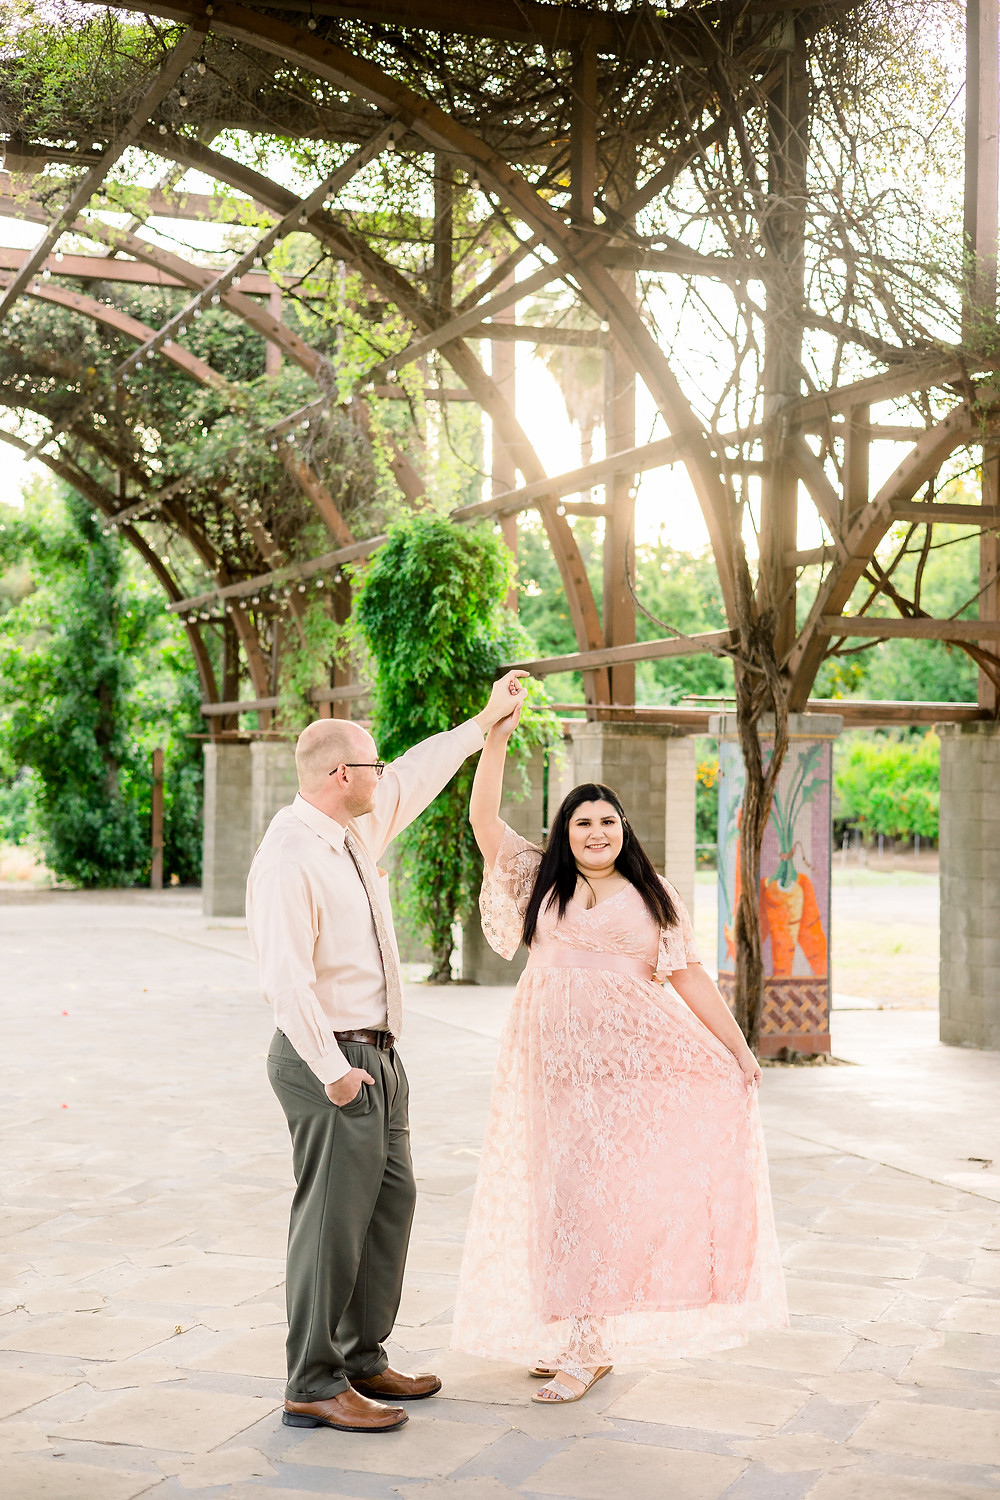 Engagement session in Fresno, CA by Ashley Norton Photography